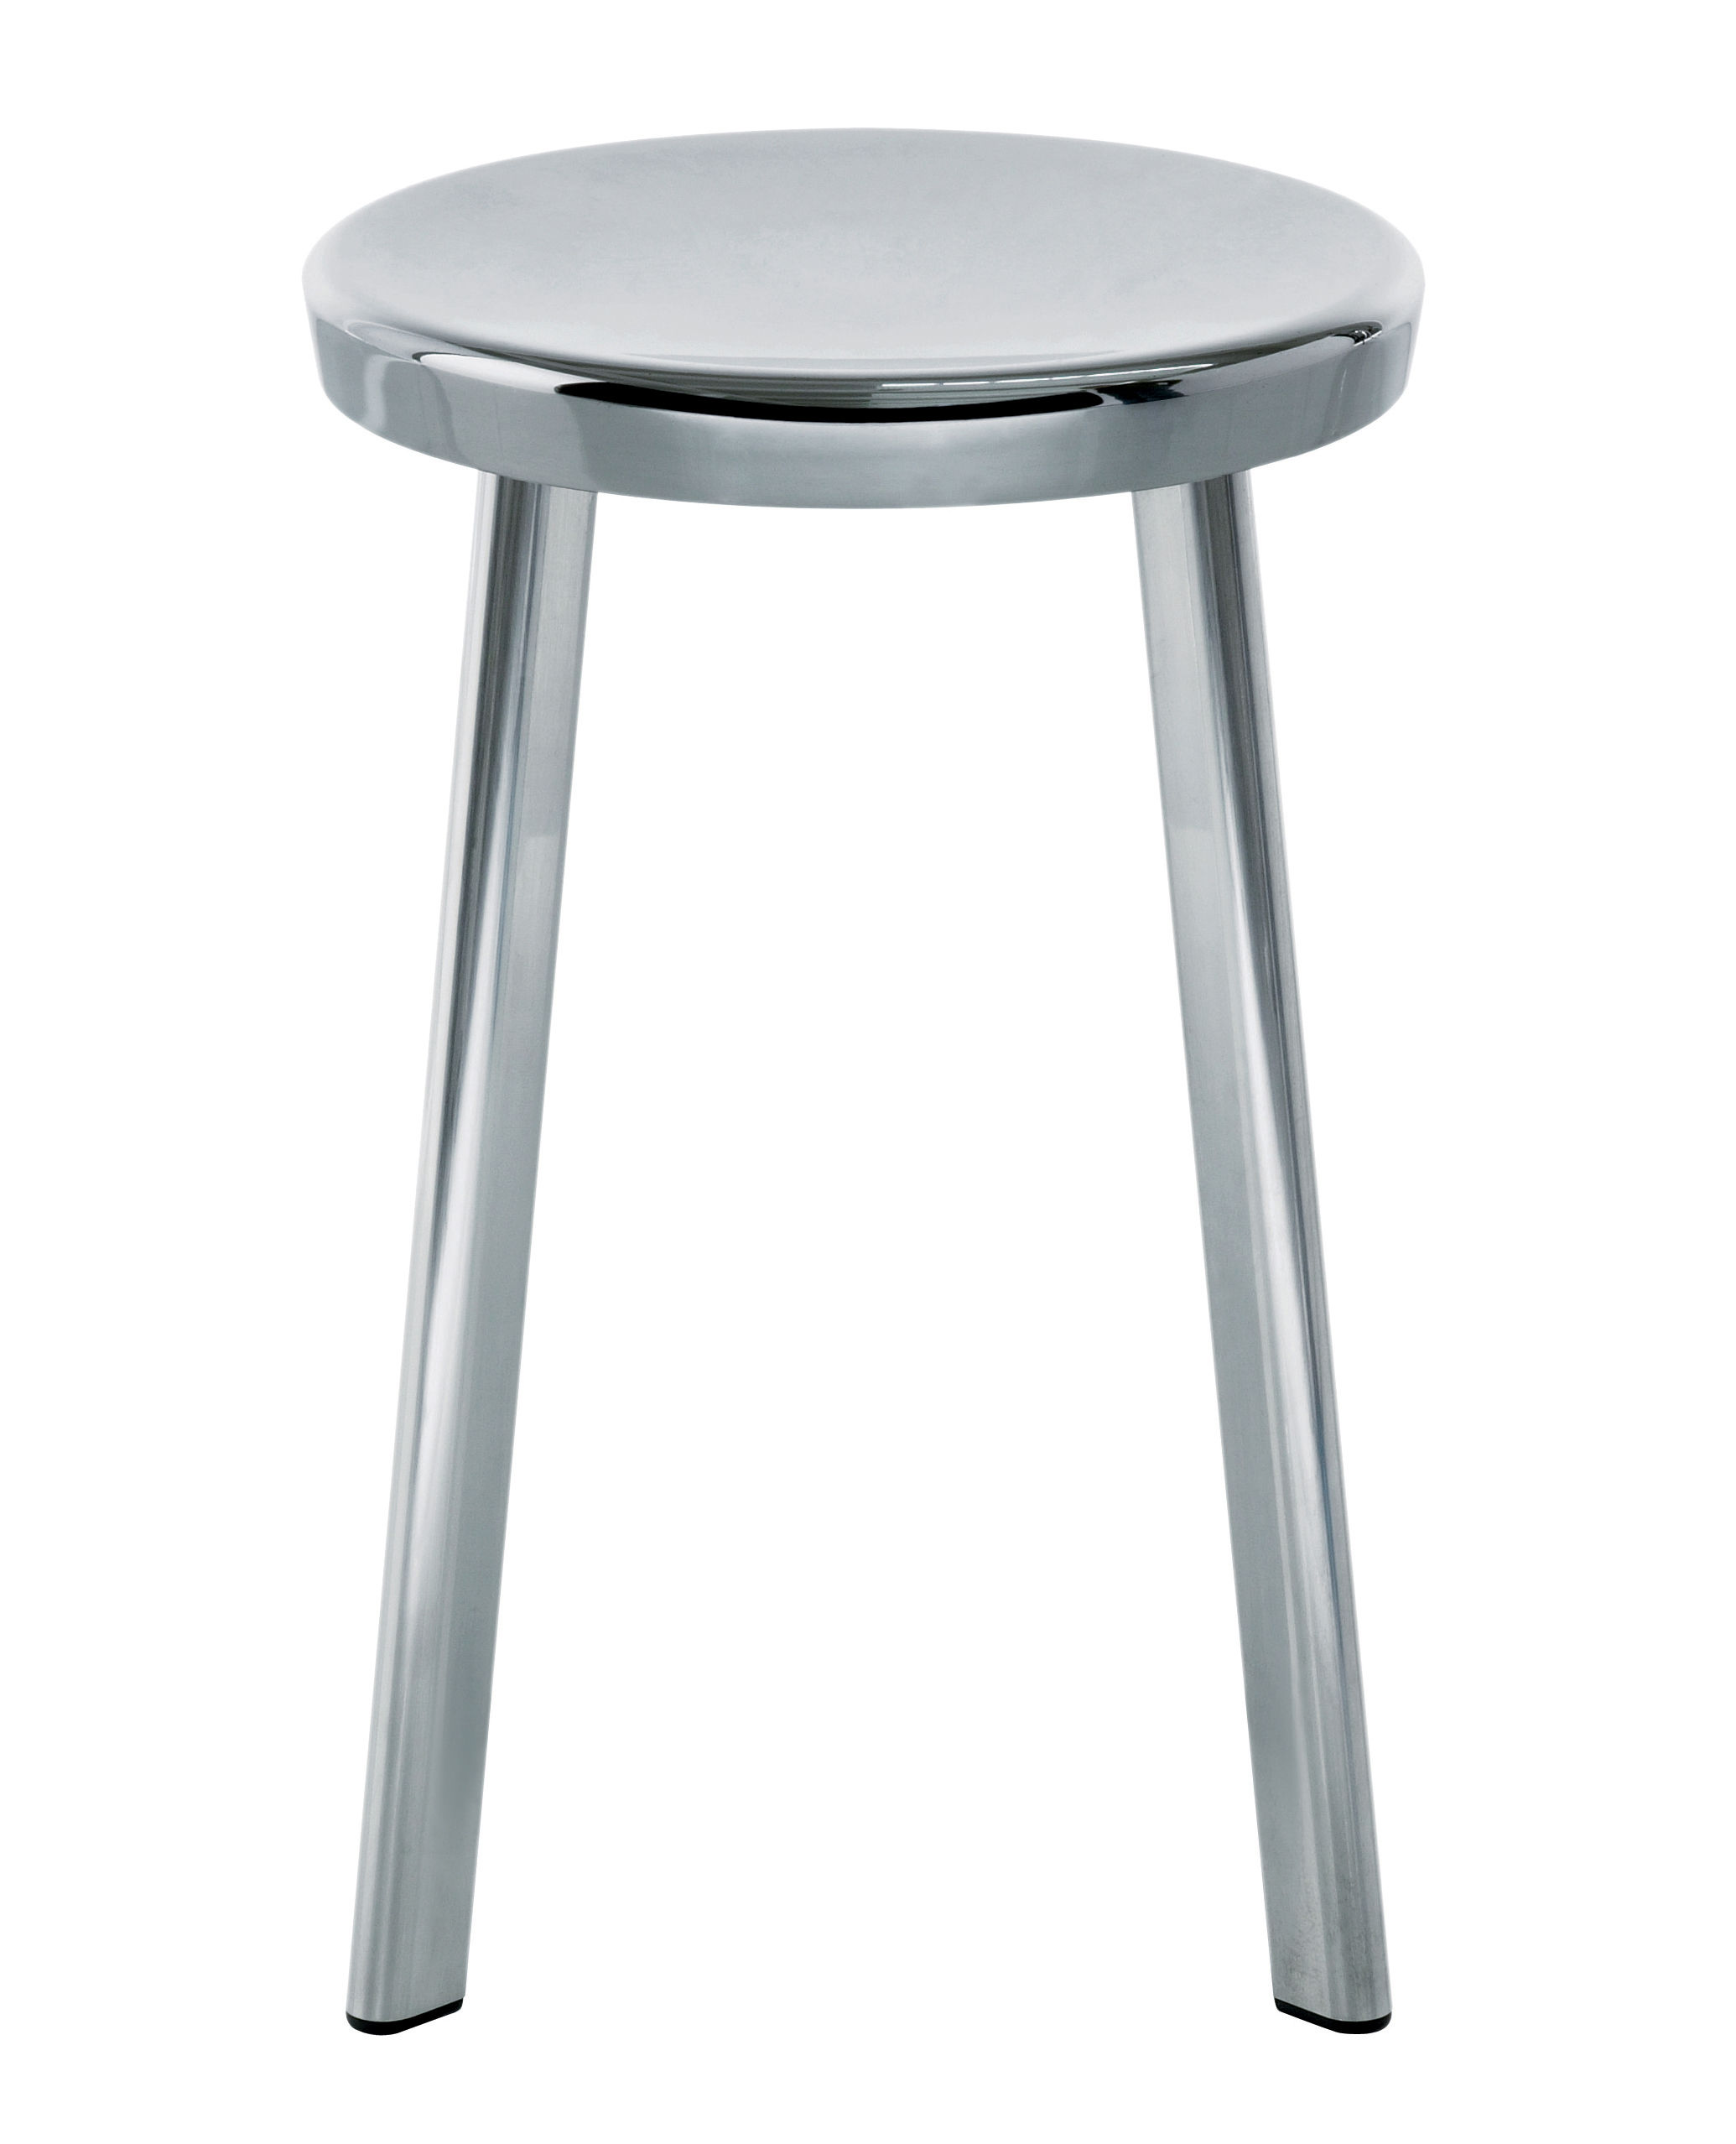 Furniture - Stools - Déjà-vu Stool by Magis - Stool H 50 cm - Cast aluminium, Polished aluminium